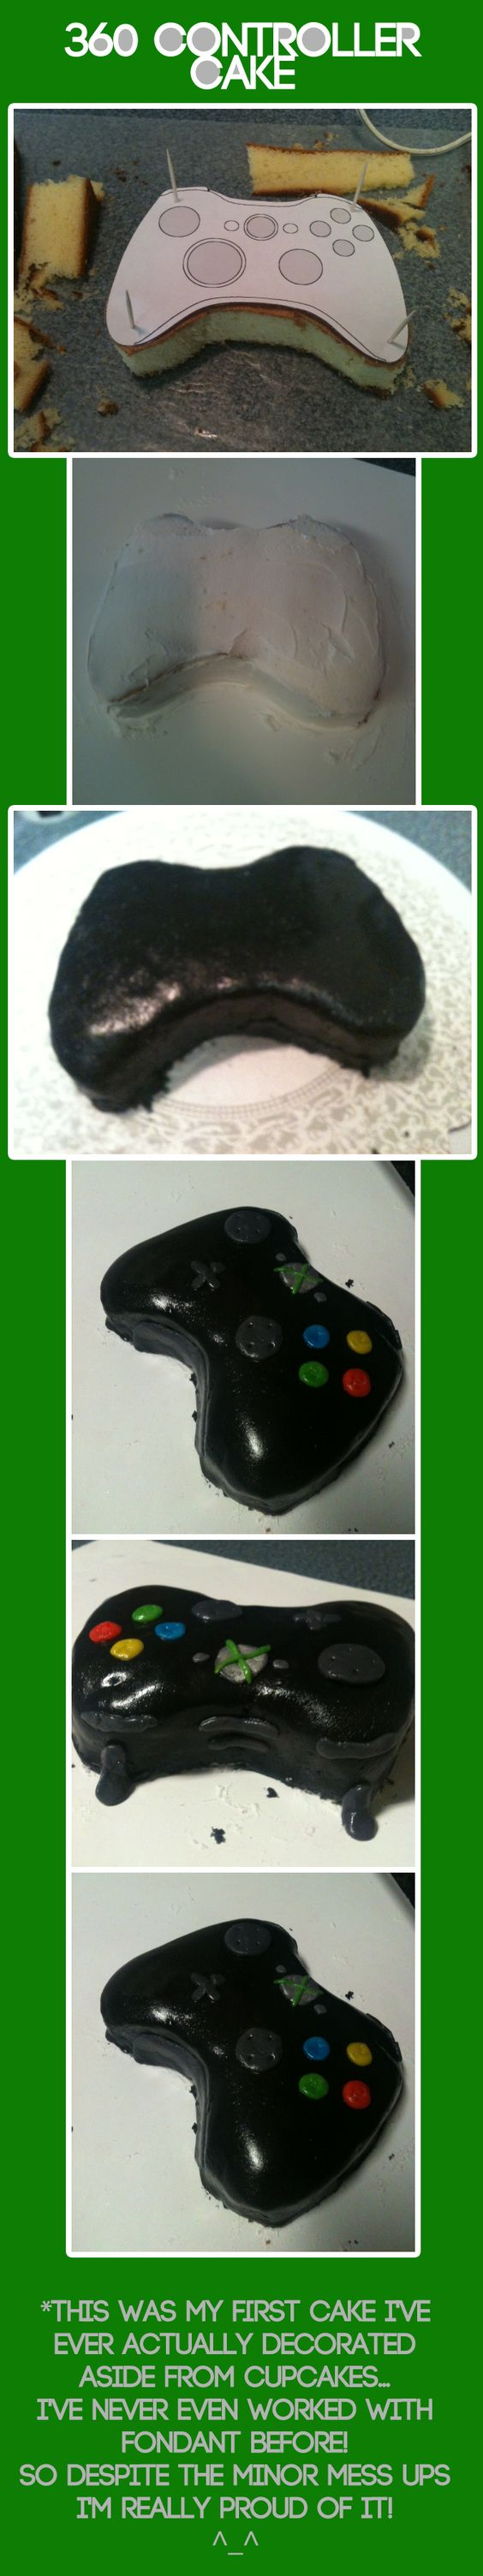 360 controller cake by A-SkyfiOriginal on deviantART A cake I made awhile back... when I could still eat cake... >.>